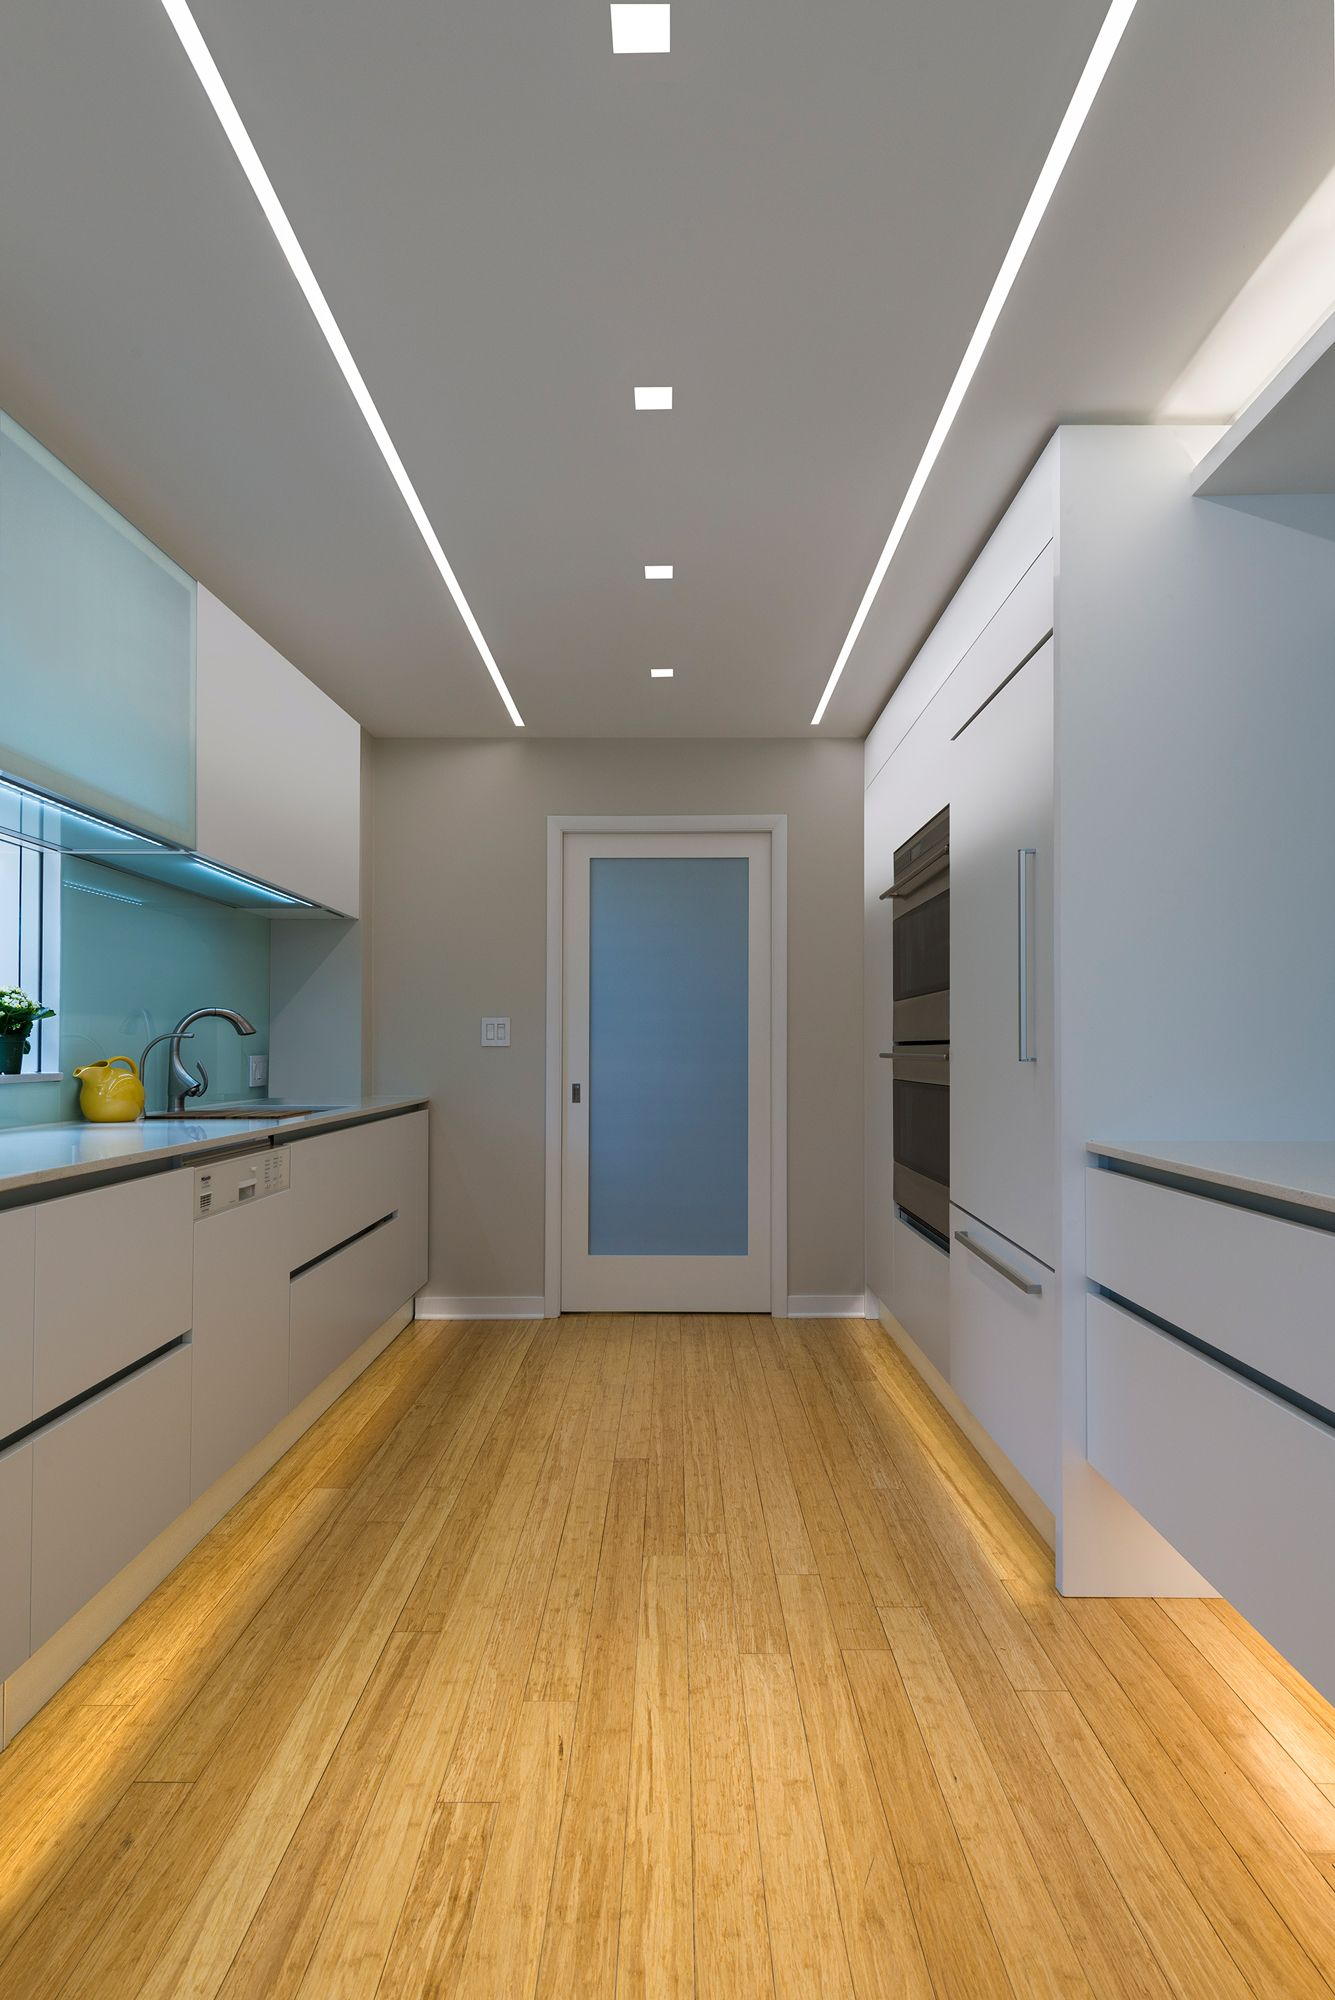 Aurora 3 3in sq edge trimless downlight housing de 2019 - Kitchen led lighting design guidelines ...